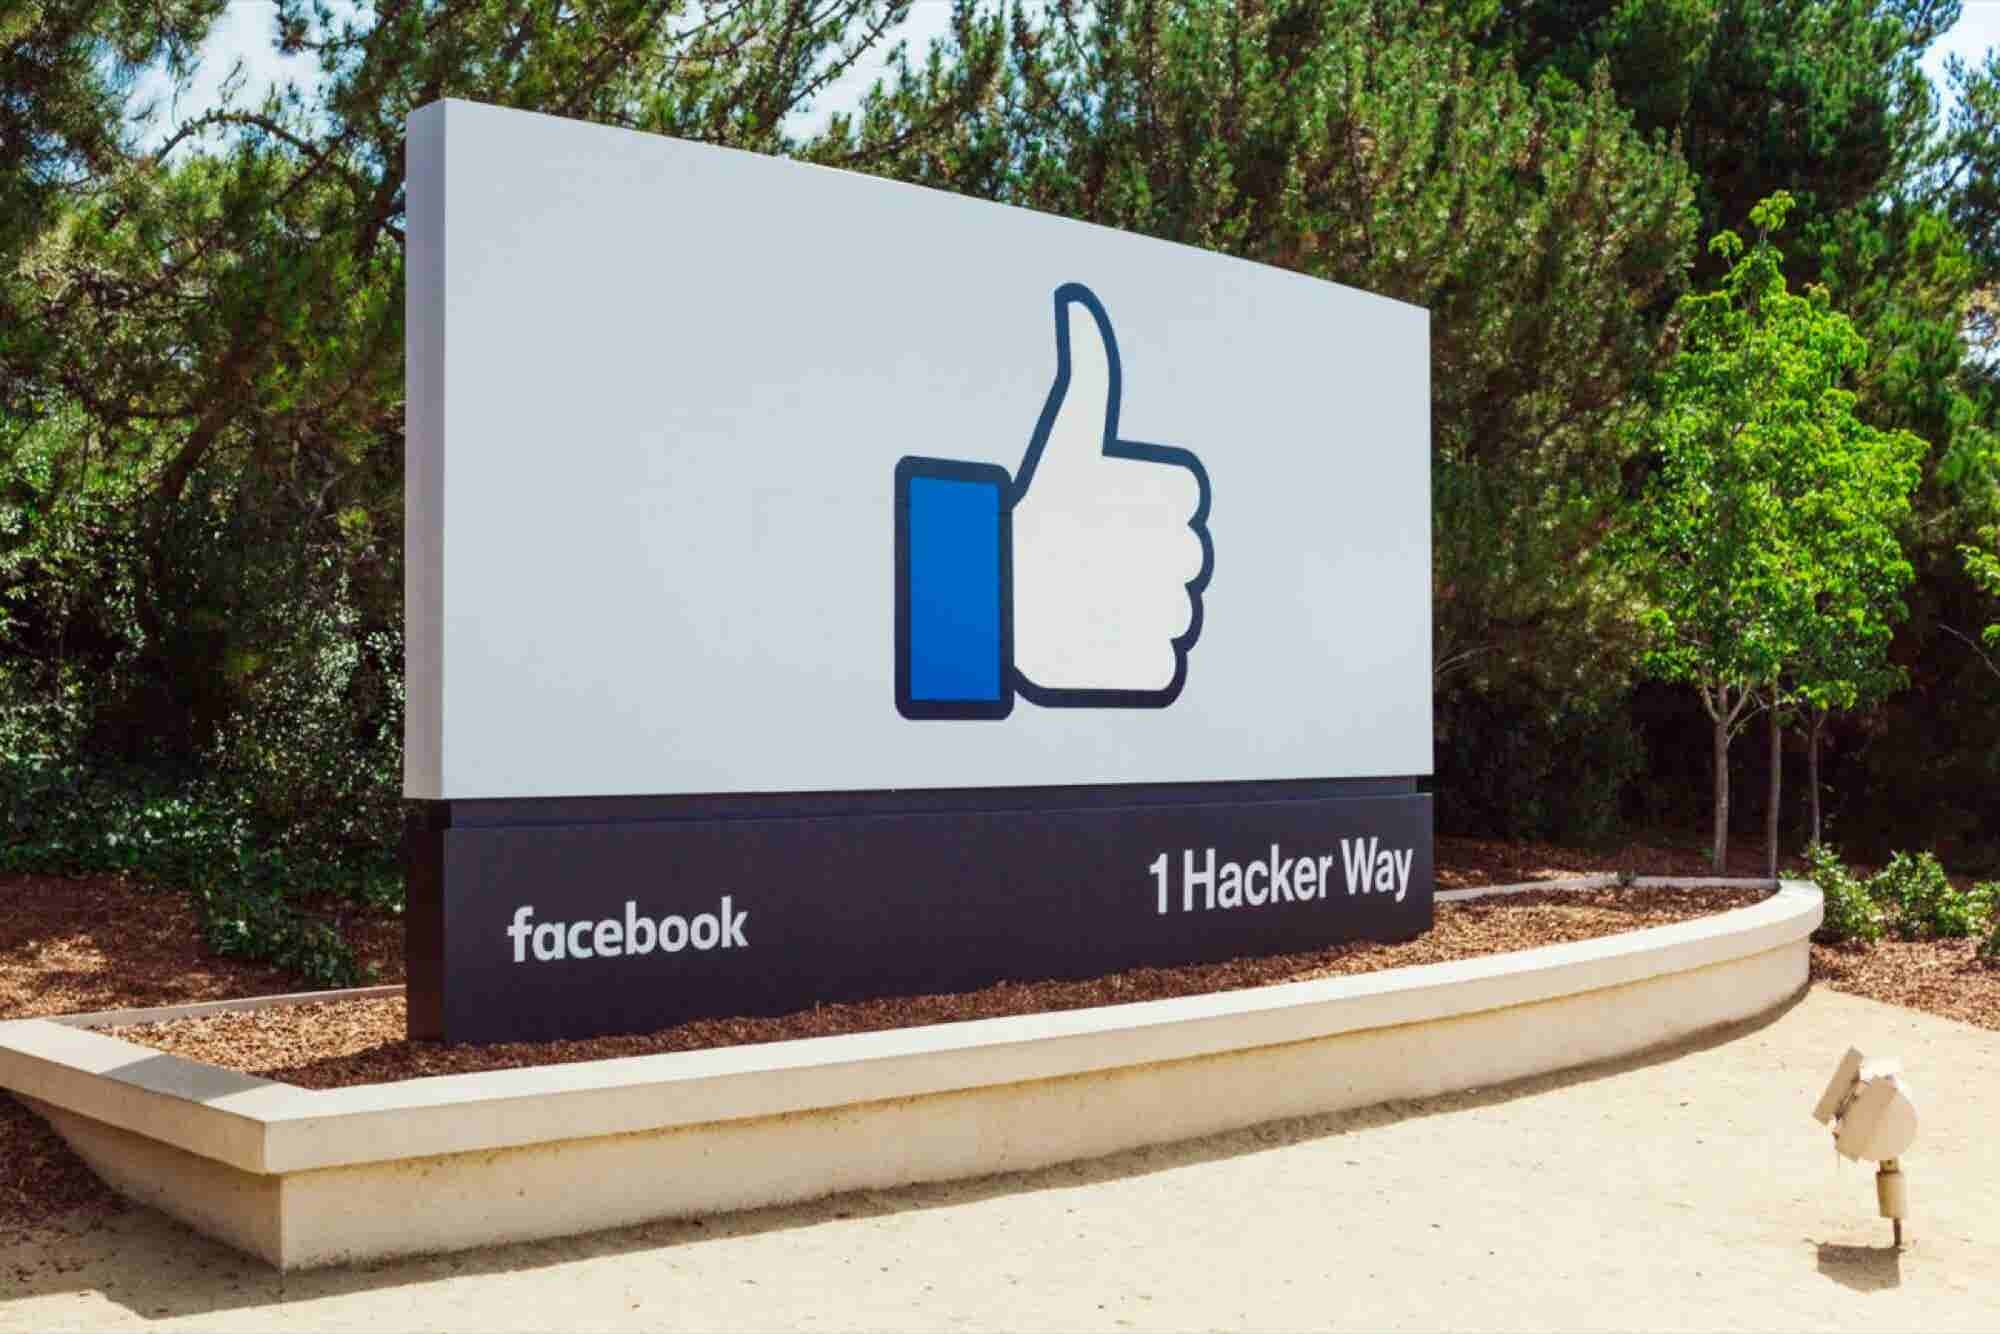 You Trusted Facebook: Own Up to It